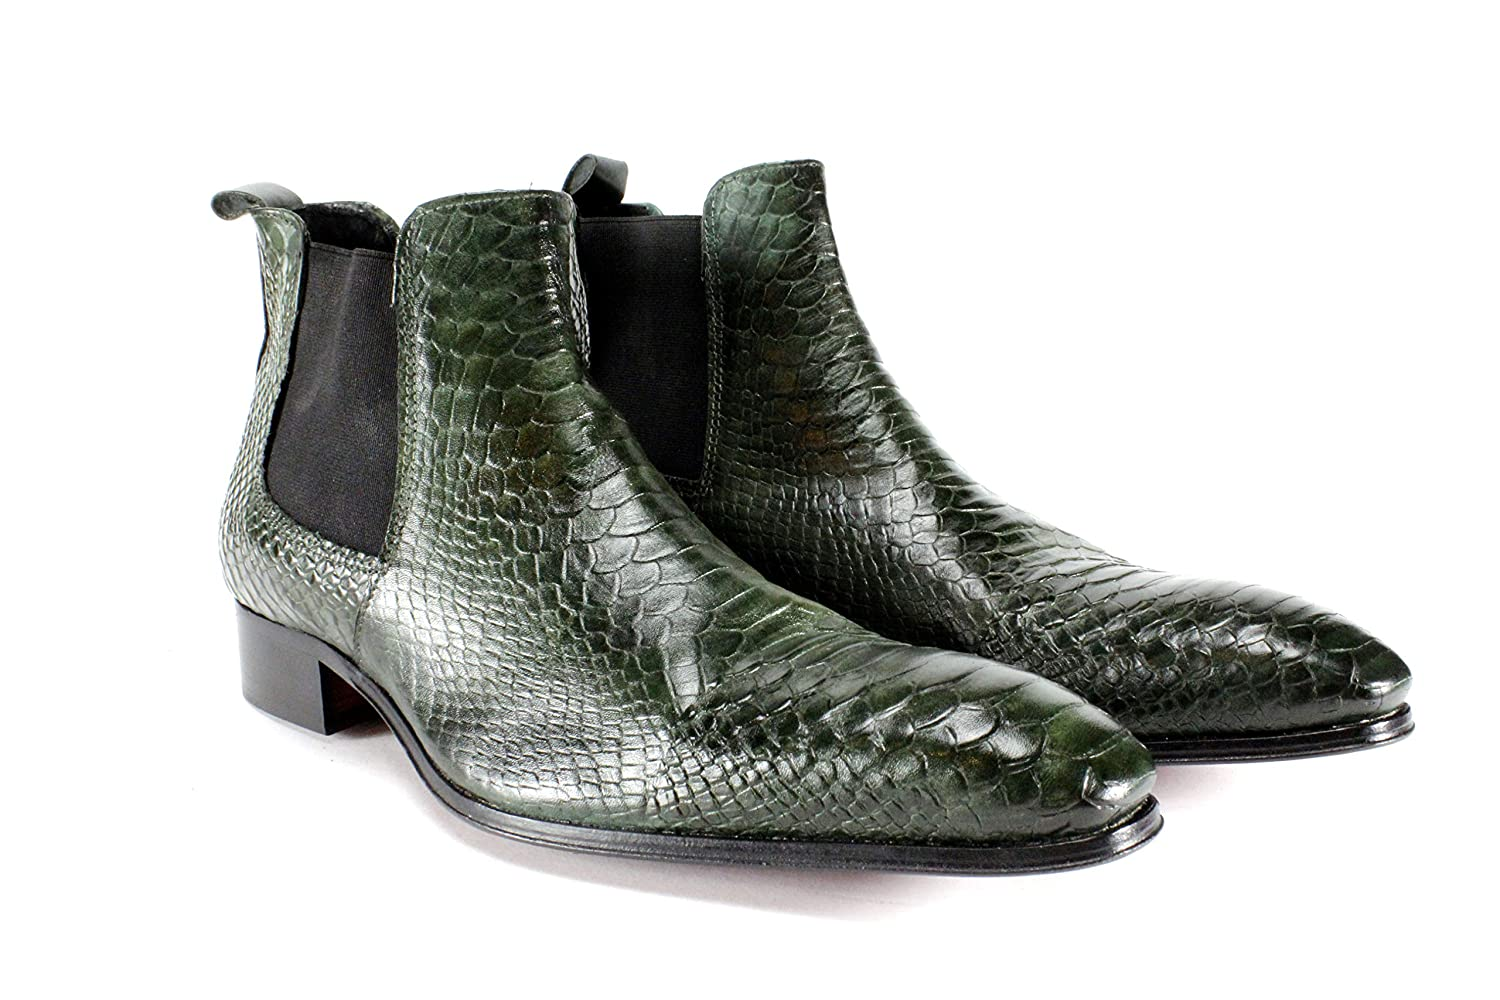 c732bb44af223 Ivan Troy Ose Green Embossed Crocodile Handmade Men's Shoes/Italian Leather  Dress Shoes Boots